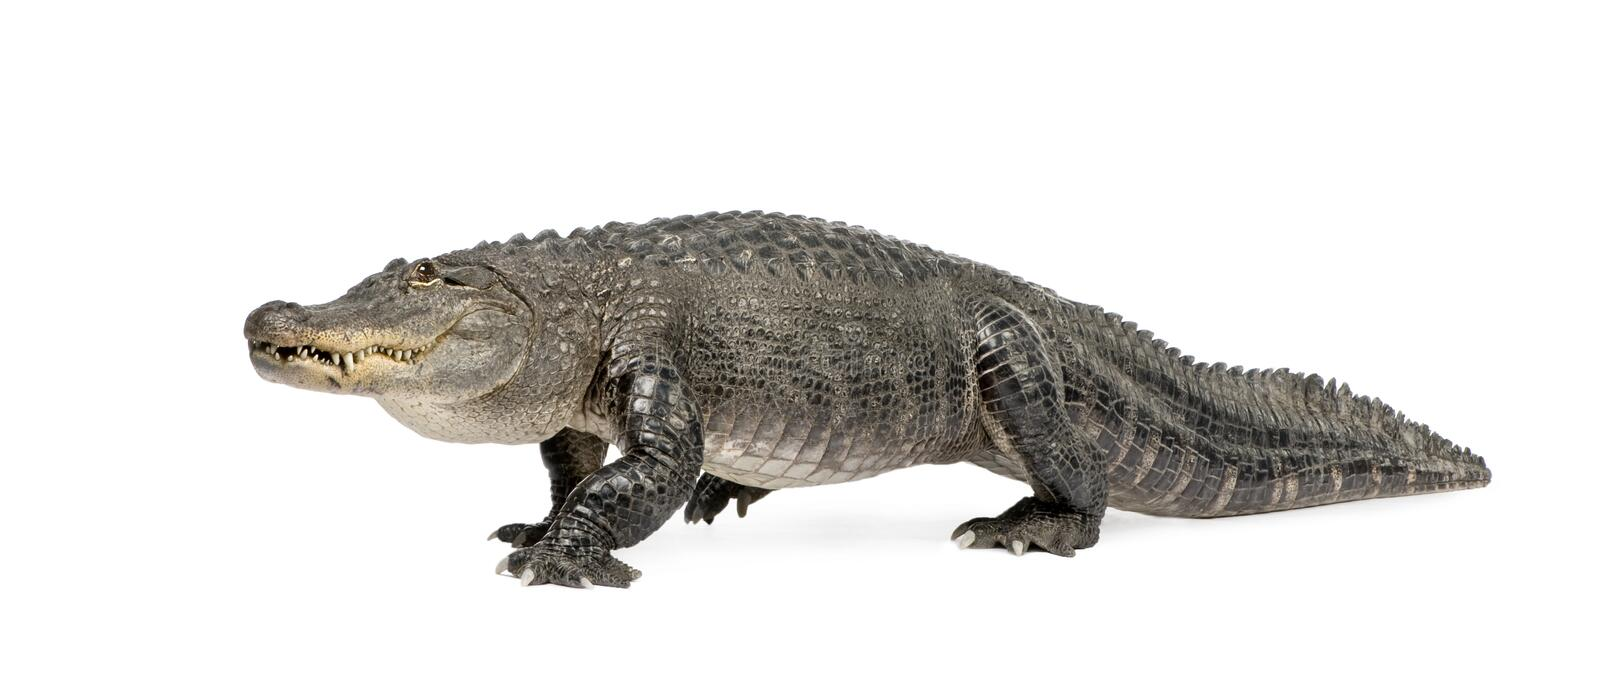 Alligator mississippiensis - (30 years). American Alligator (30 years) - Alligator mississippiensis in front of a white background royalty free stock images